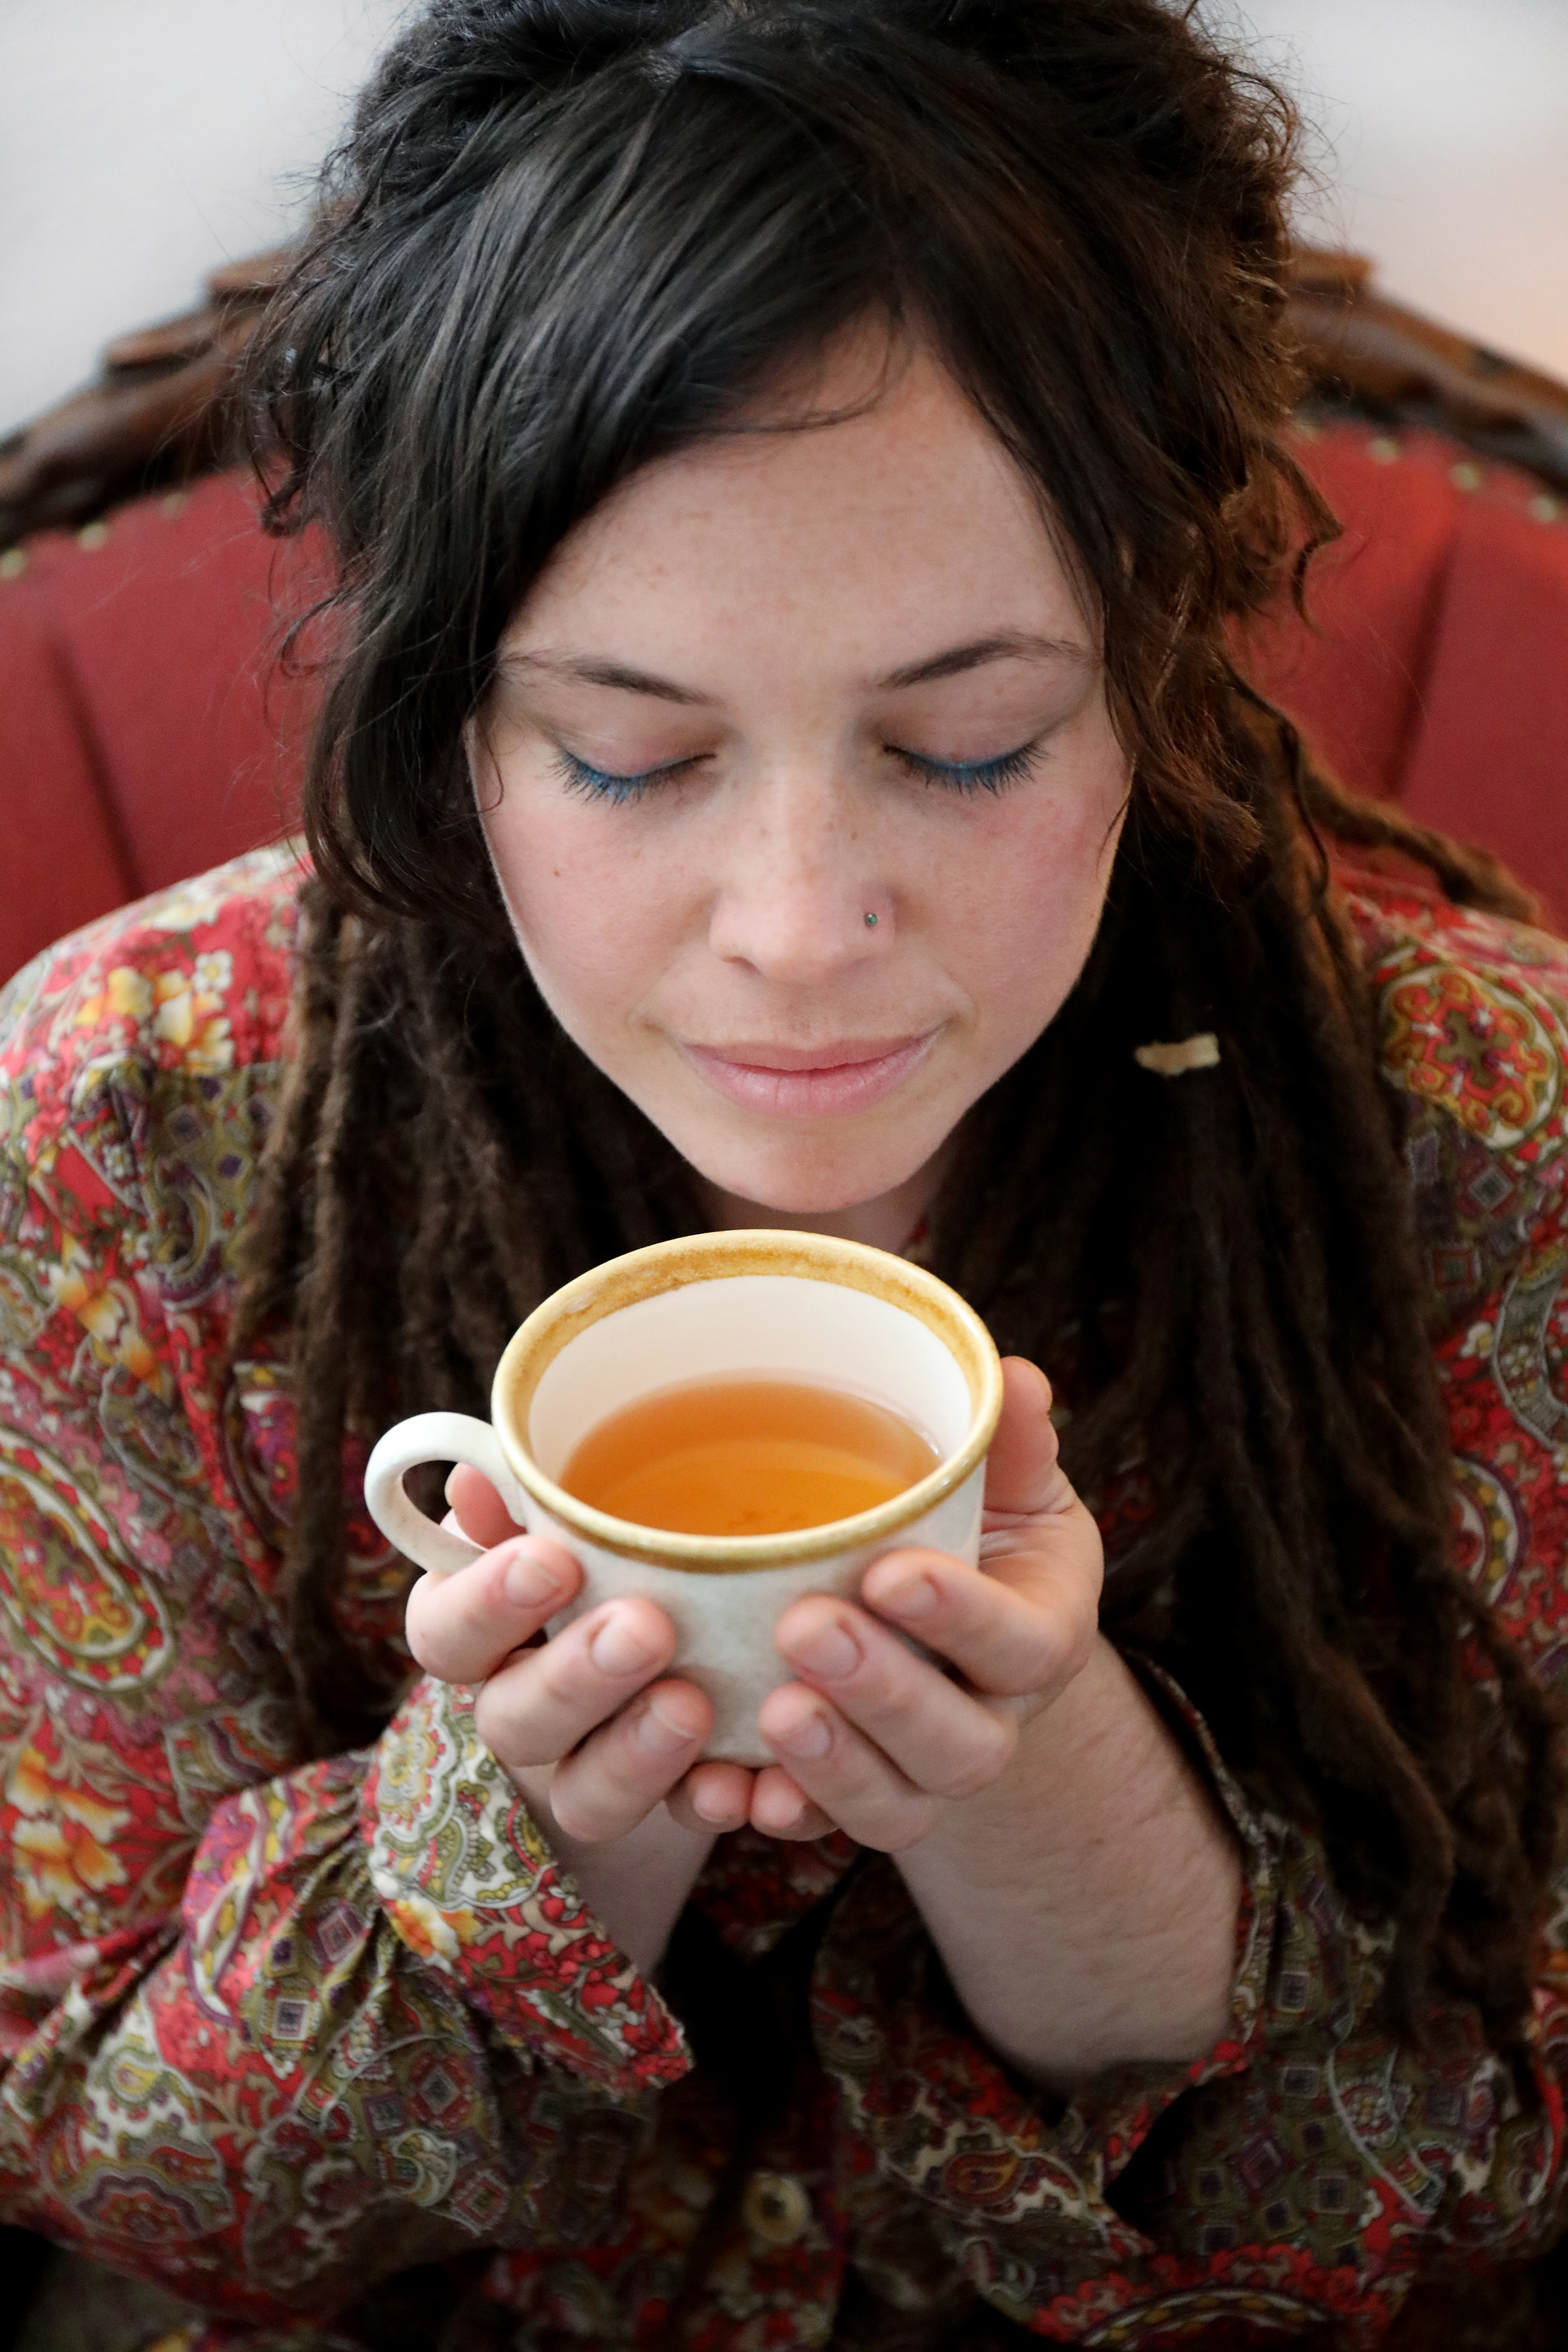 Young woman in paisley print dress holding cup of tea close to face to smell aroma